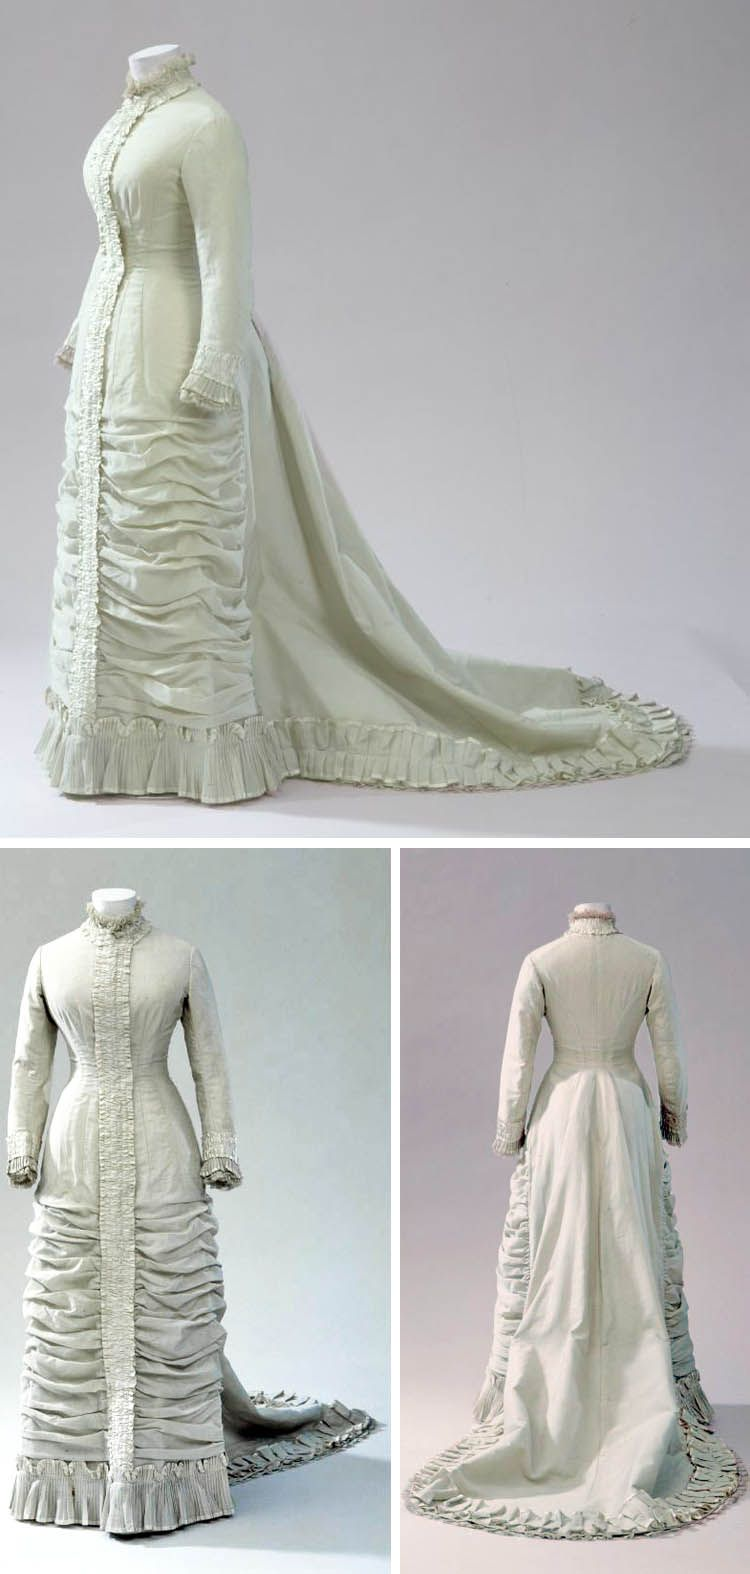 Wedding Dress 1881 Light Green Wool Twill With White Silk And Cotton Trim And White Machine Lace Lined Victorian Fashion Historical Dresses Vintage Outfits